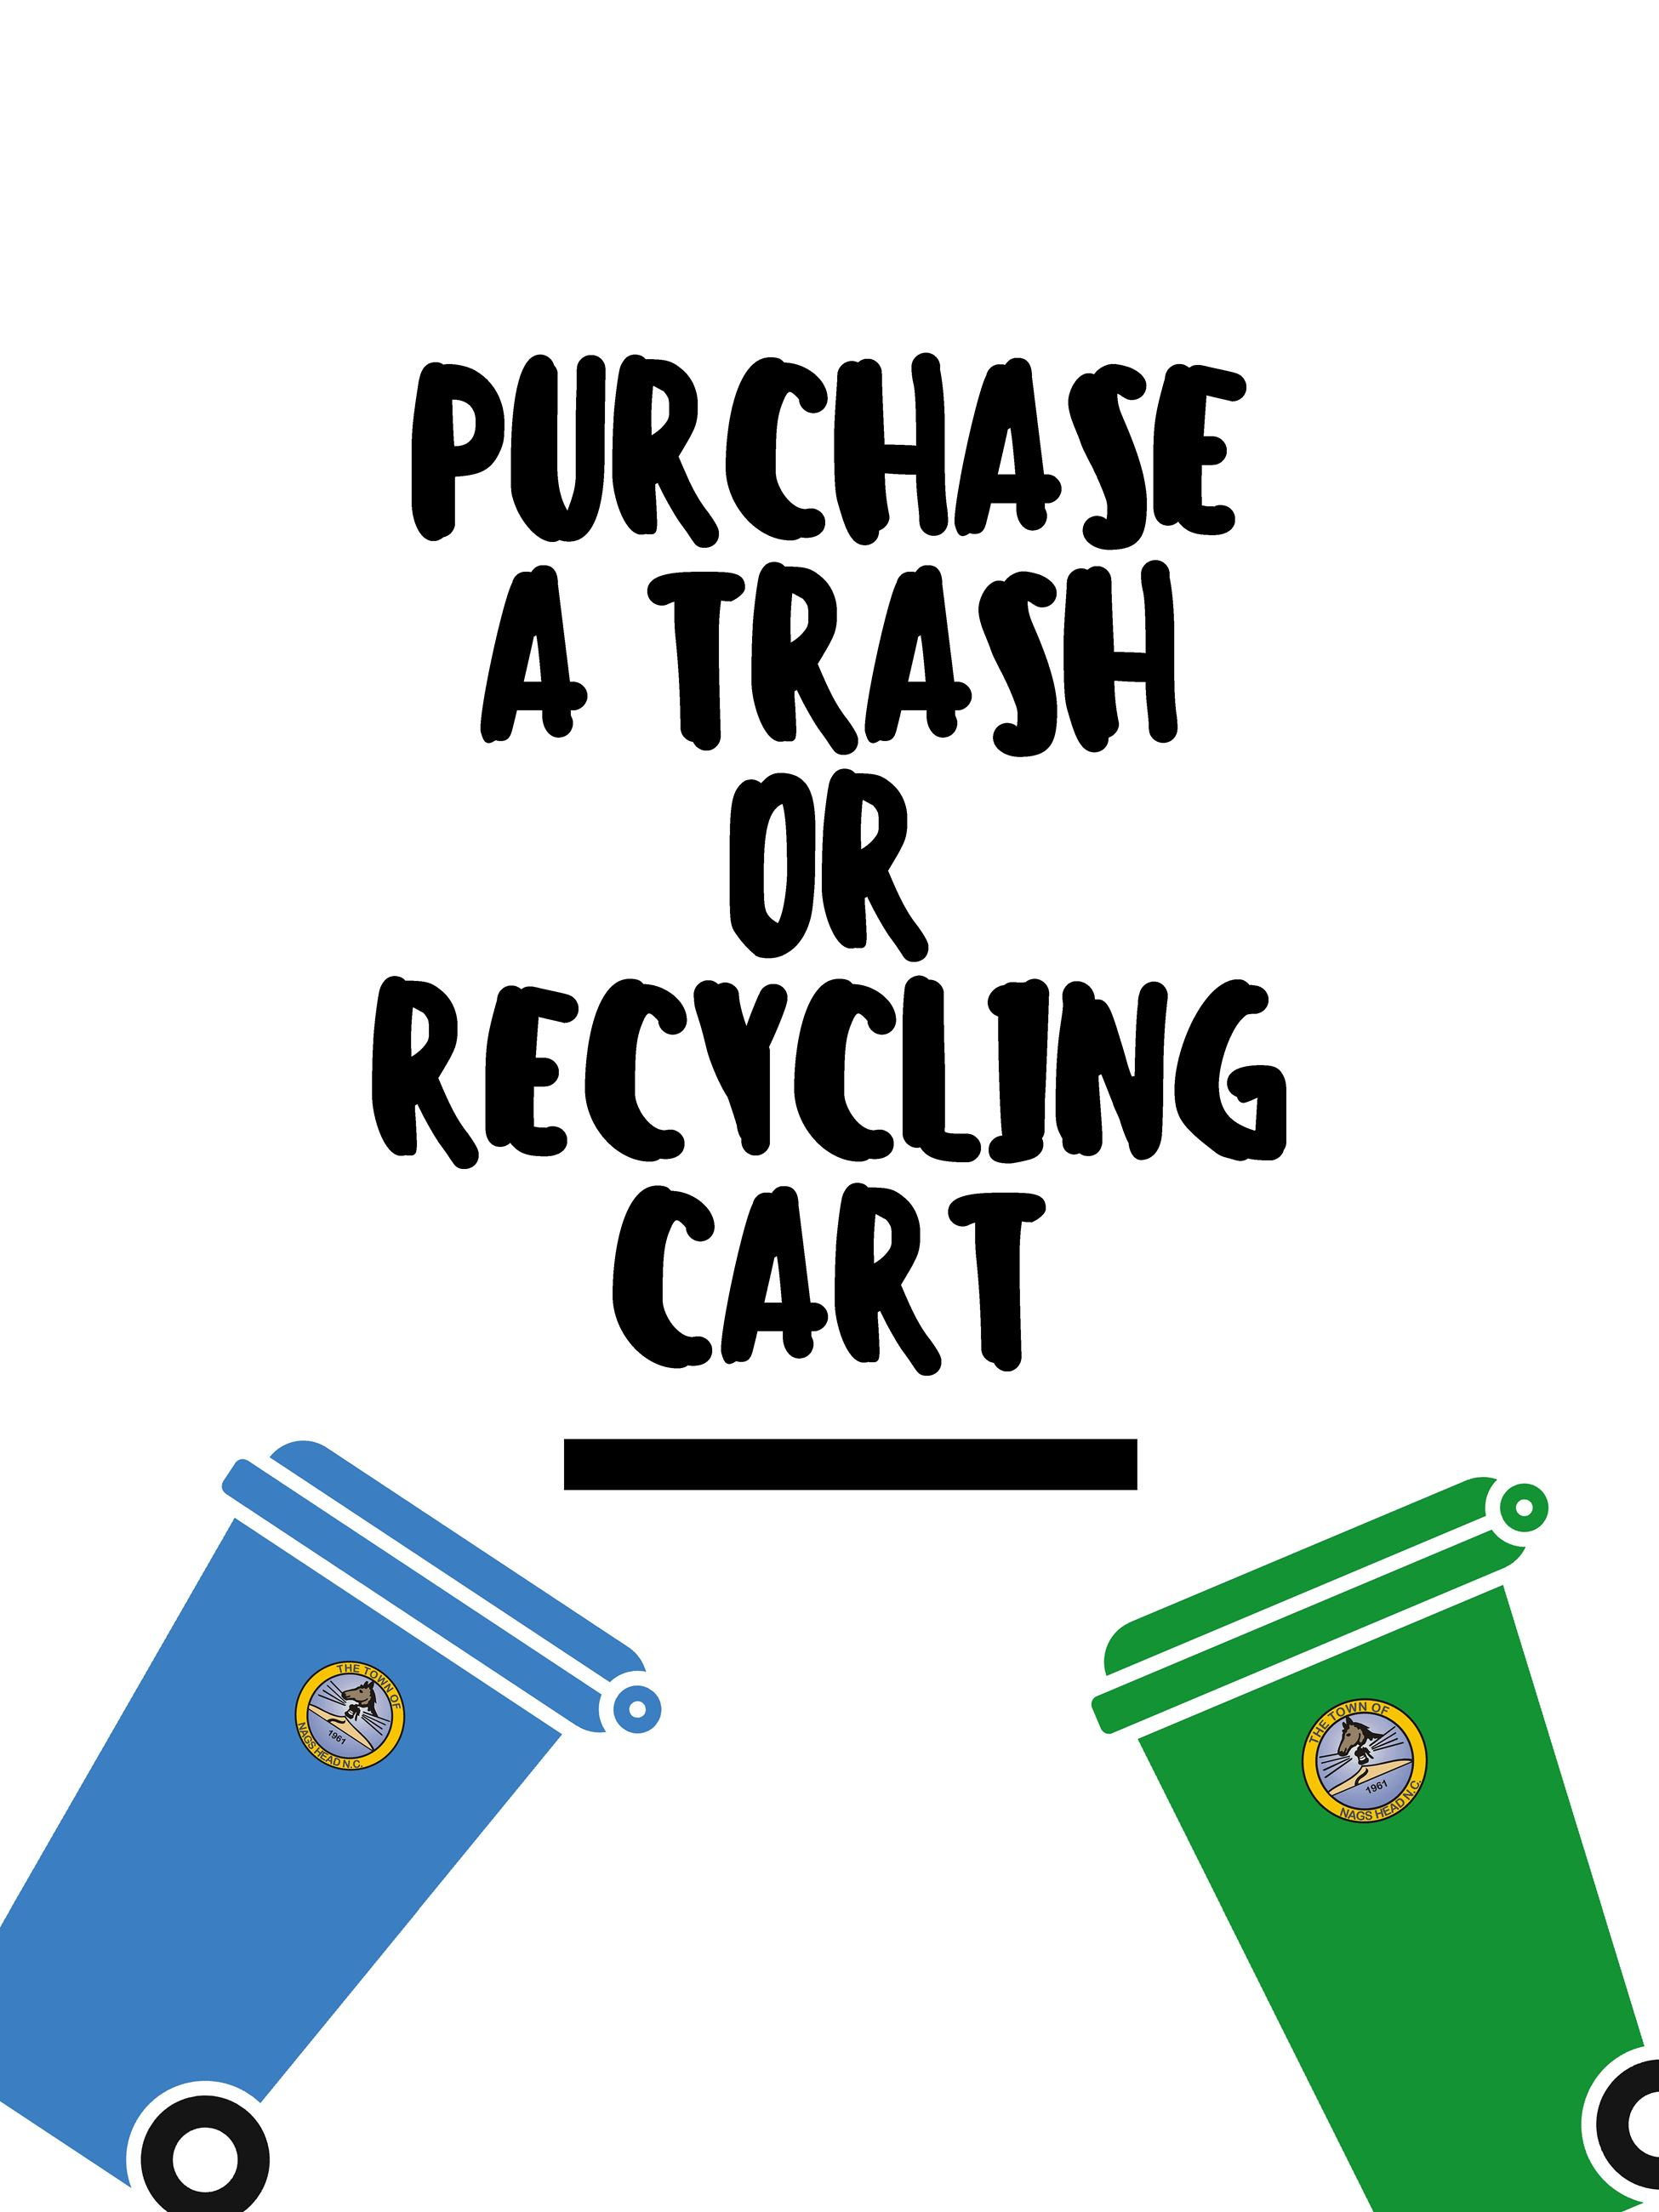 Link to Purchase a Trash or Recycling Cart